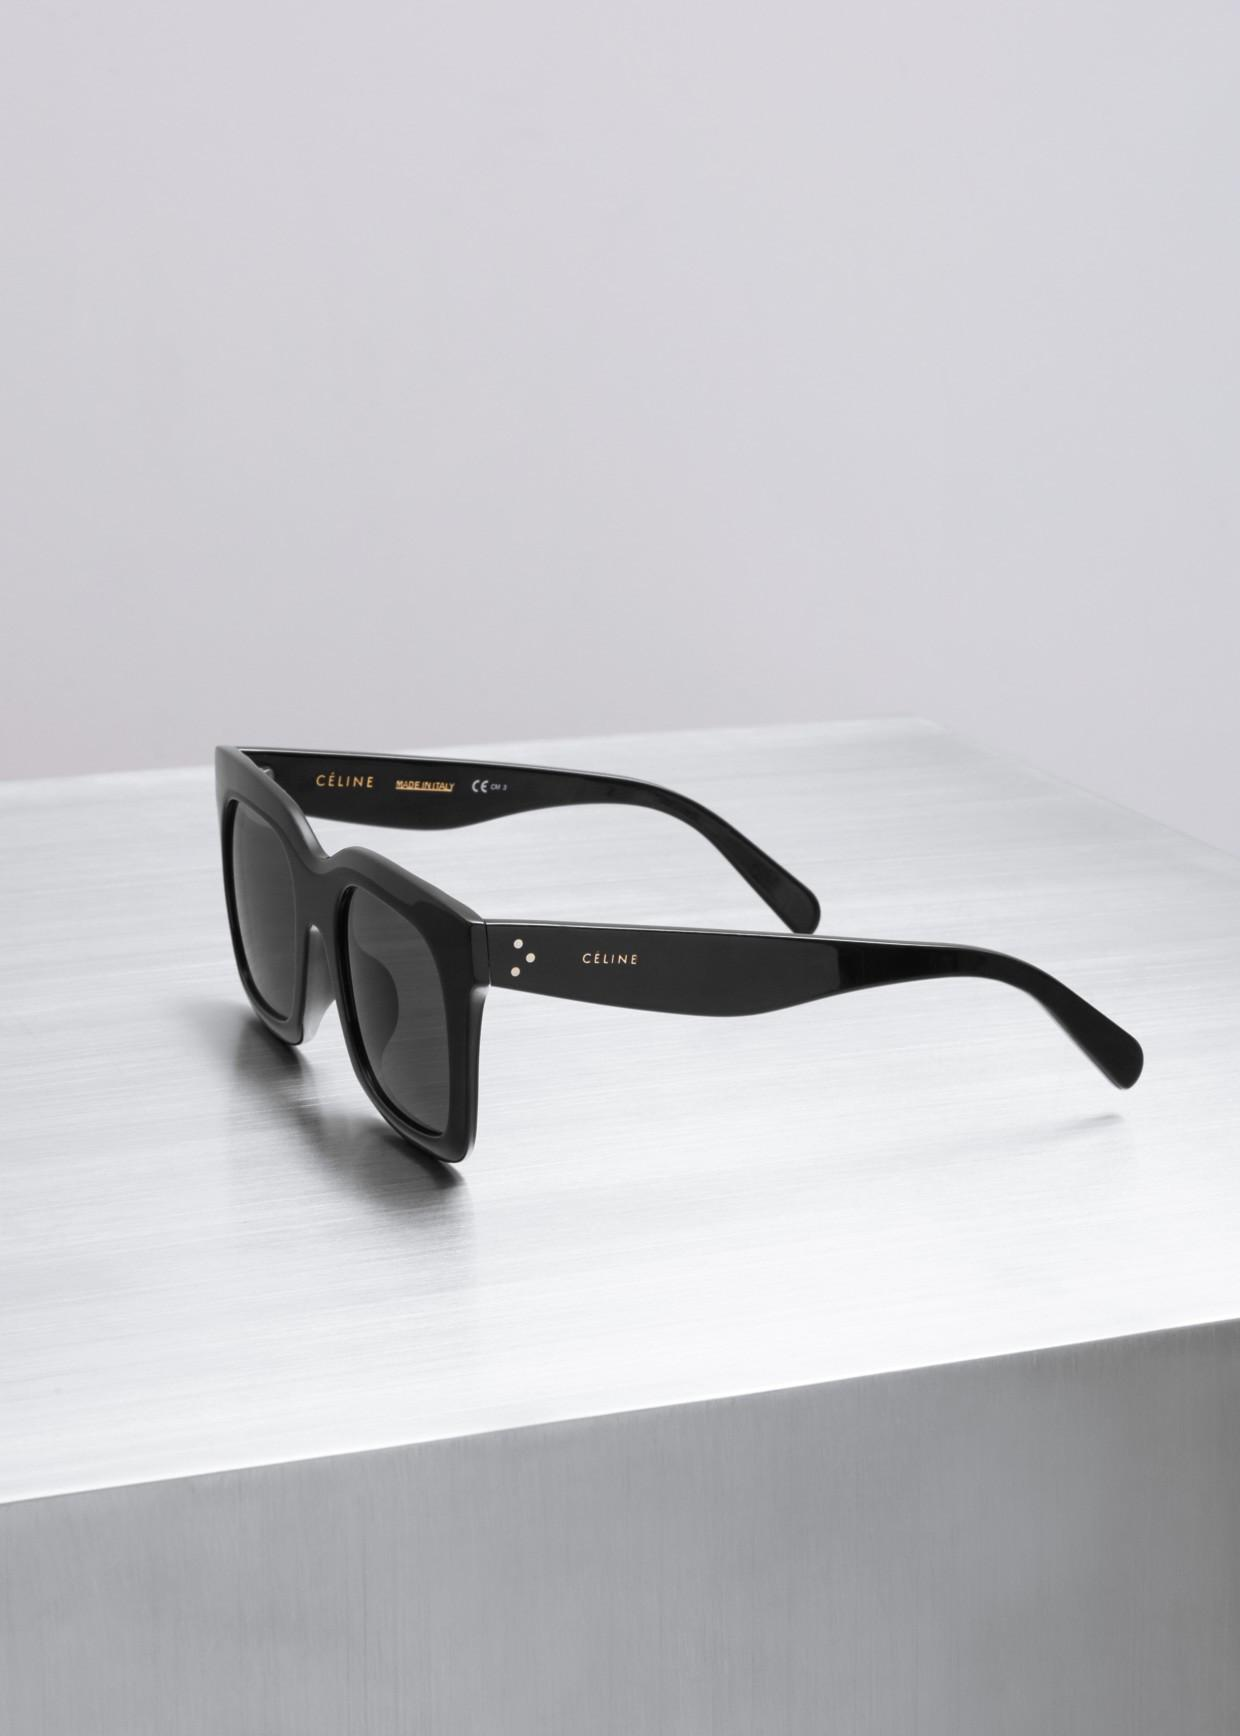 11f99a6354a1f Céline 41411 f s Sunglasses for Men - Lyst